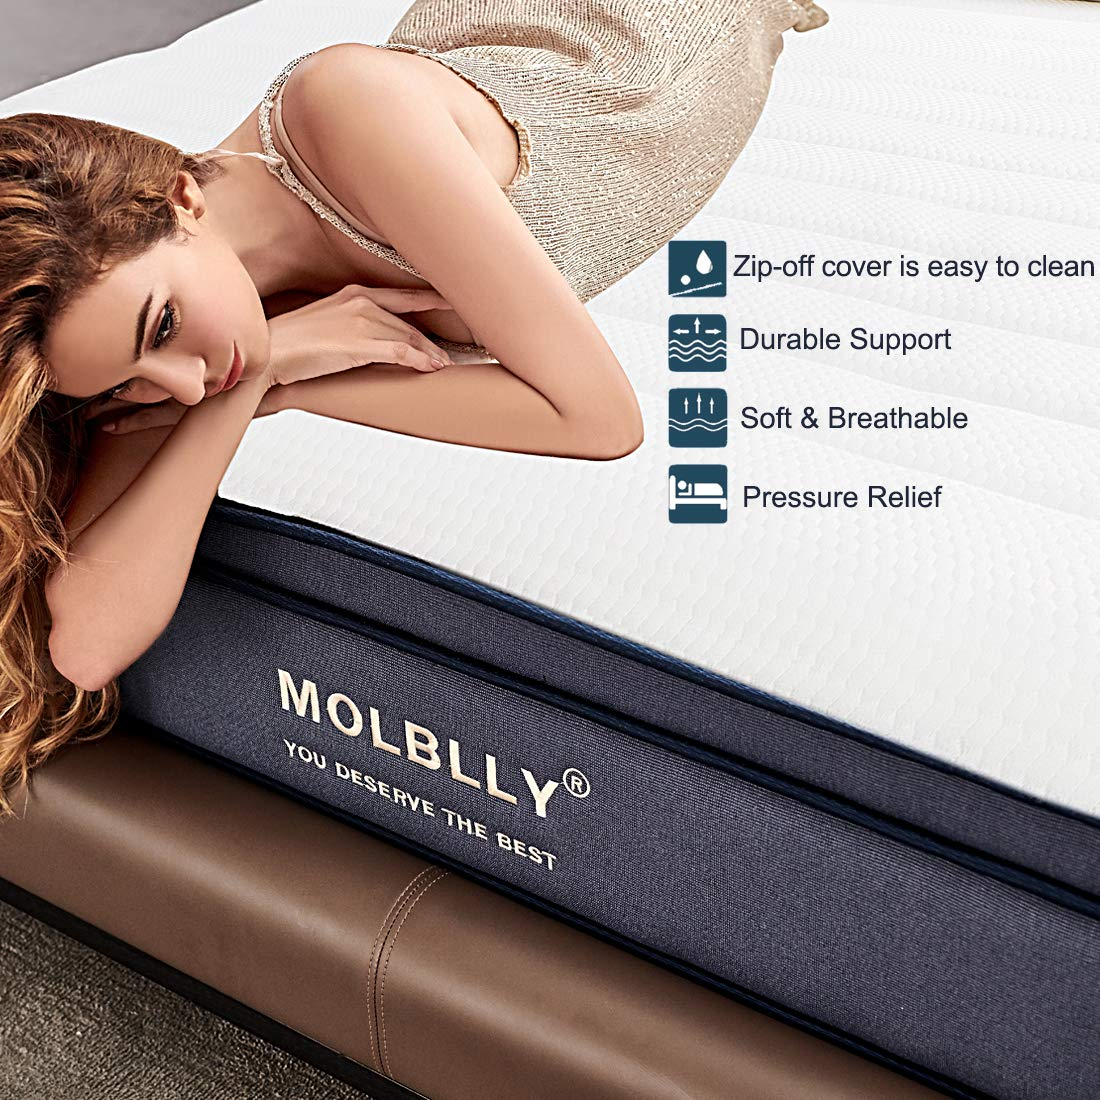 Queen Mattress, Molblly 10 inch Individually Wrapped Coils Innerspring Mattress, Pocket Spring Hybrid Mattresses with CertiPUR-US Certified Foam, Medium Plush and Supportive